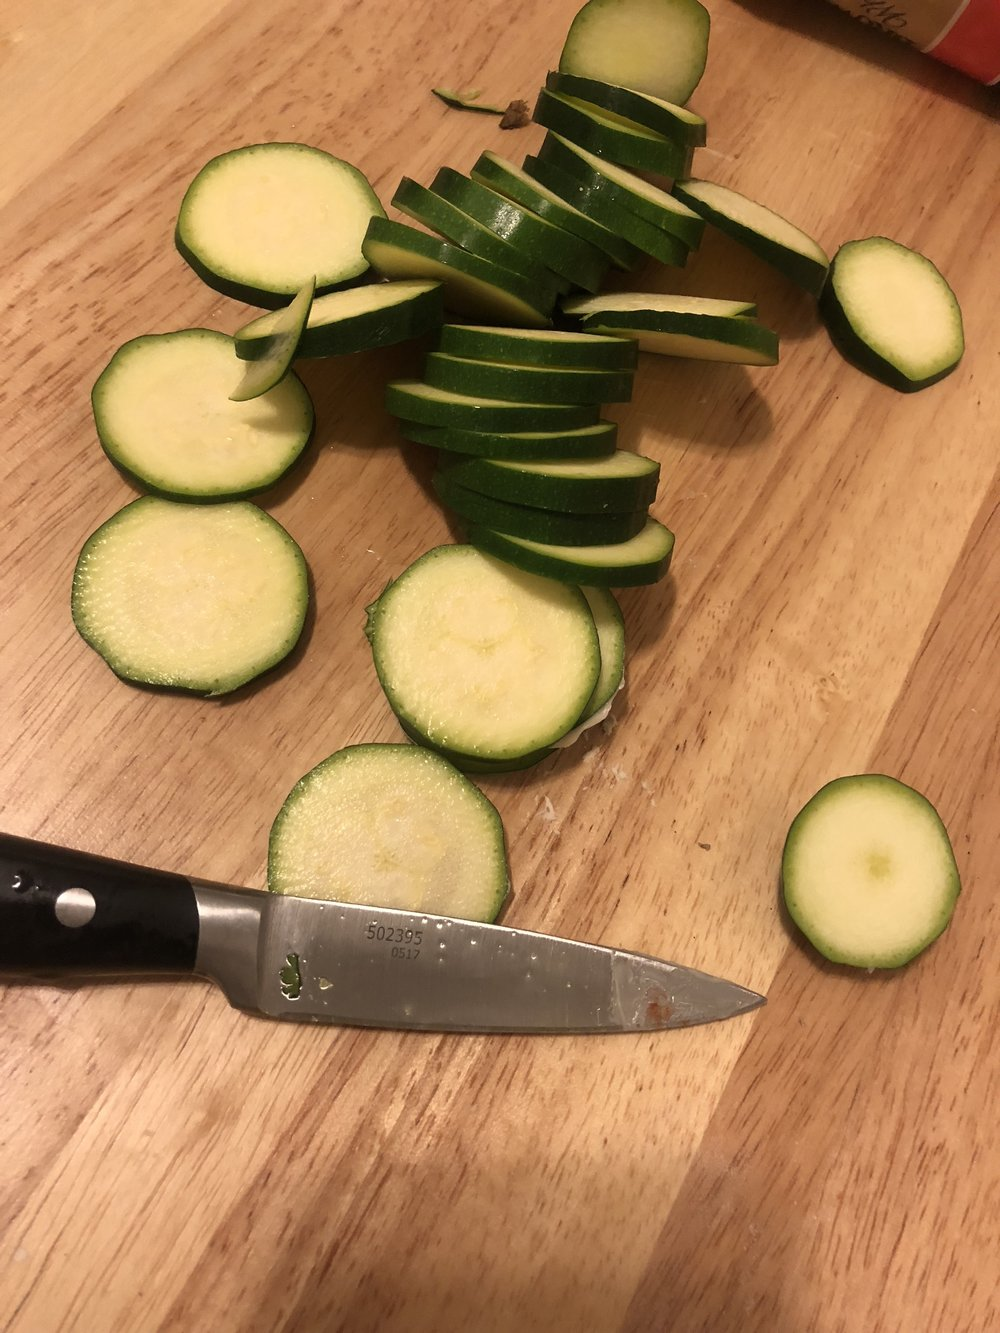 Thinly slice the zucchini